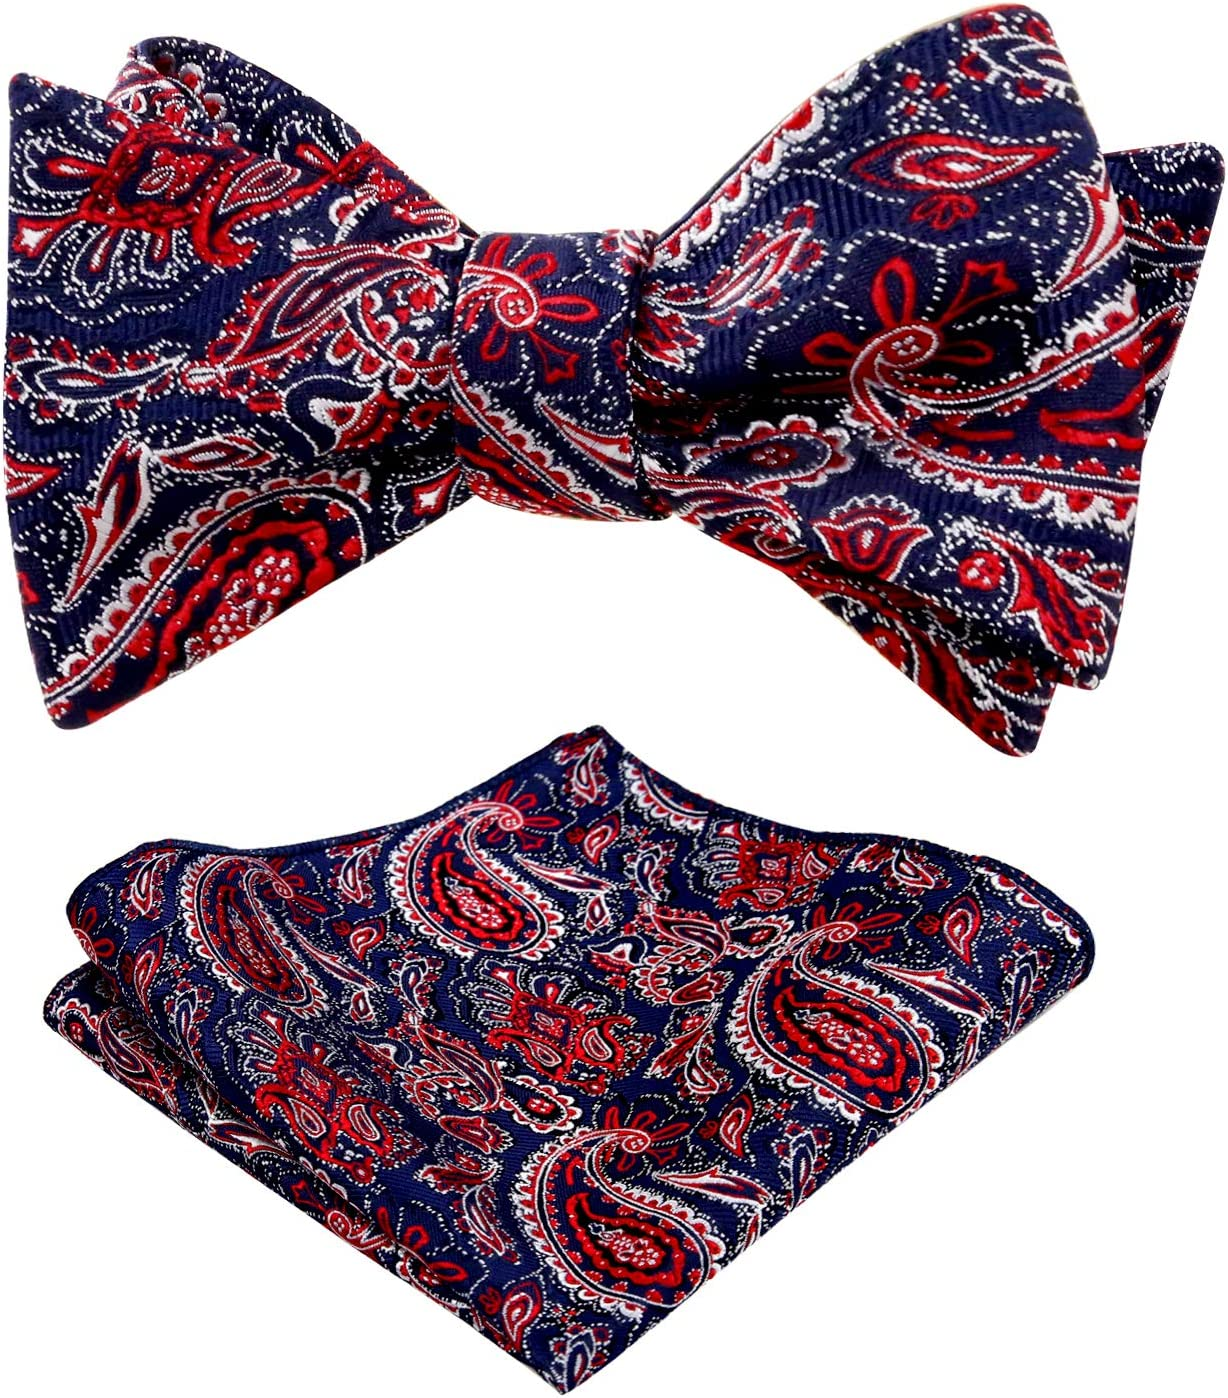 Alizeal Mens Paisley Jacquard Self-tied Bow Tie and Pocket Square Set Navy